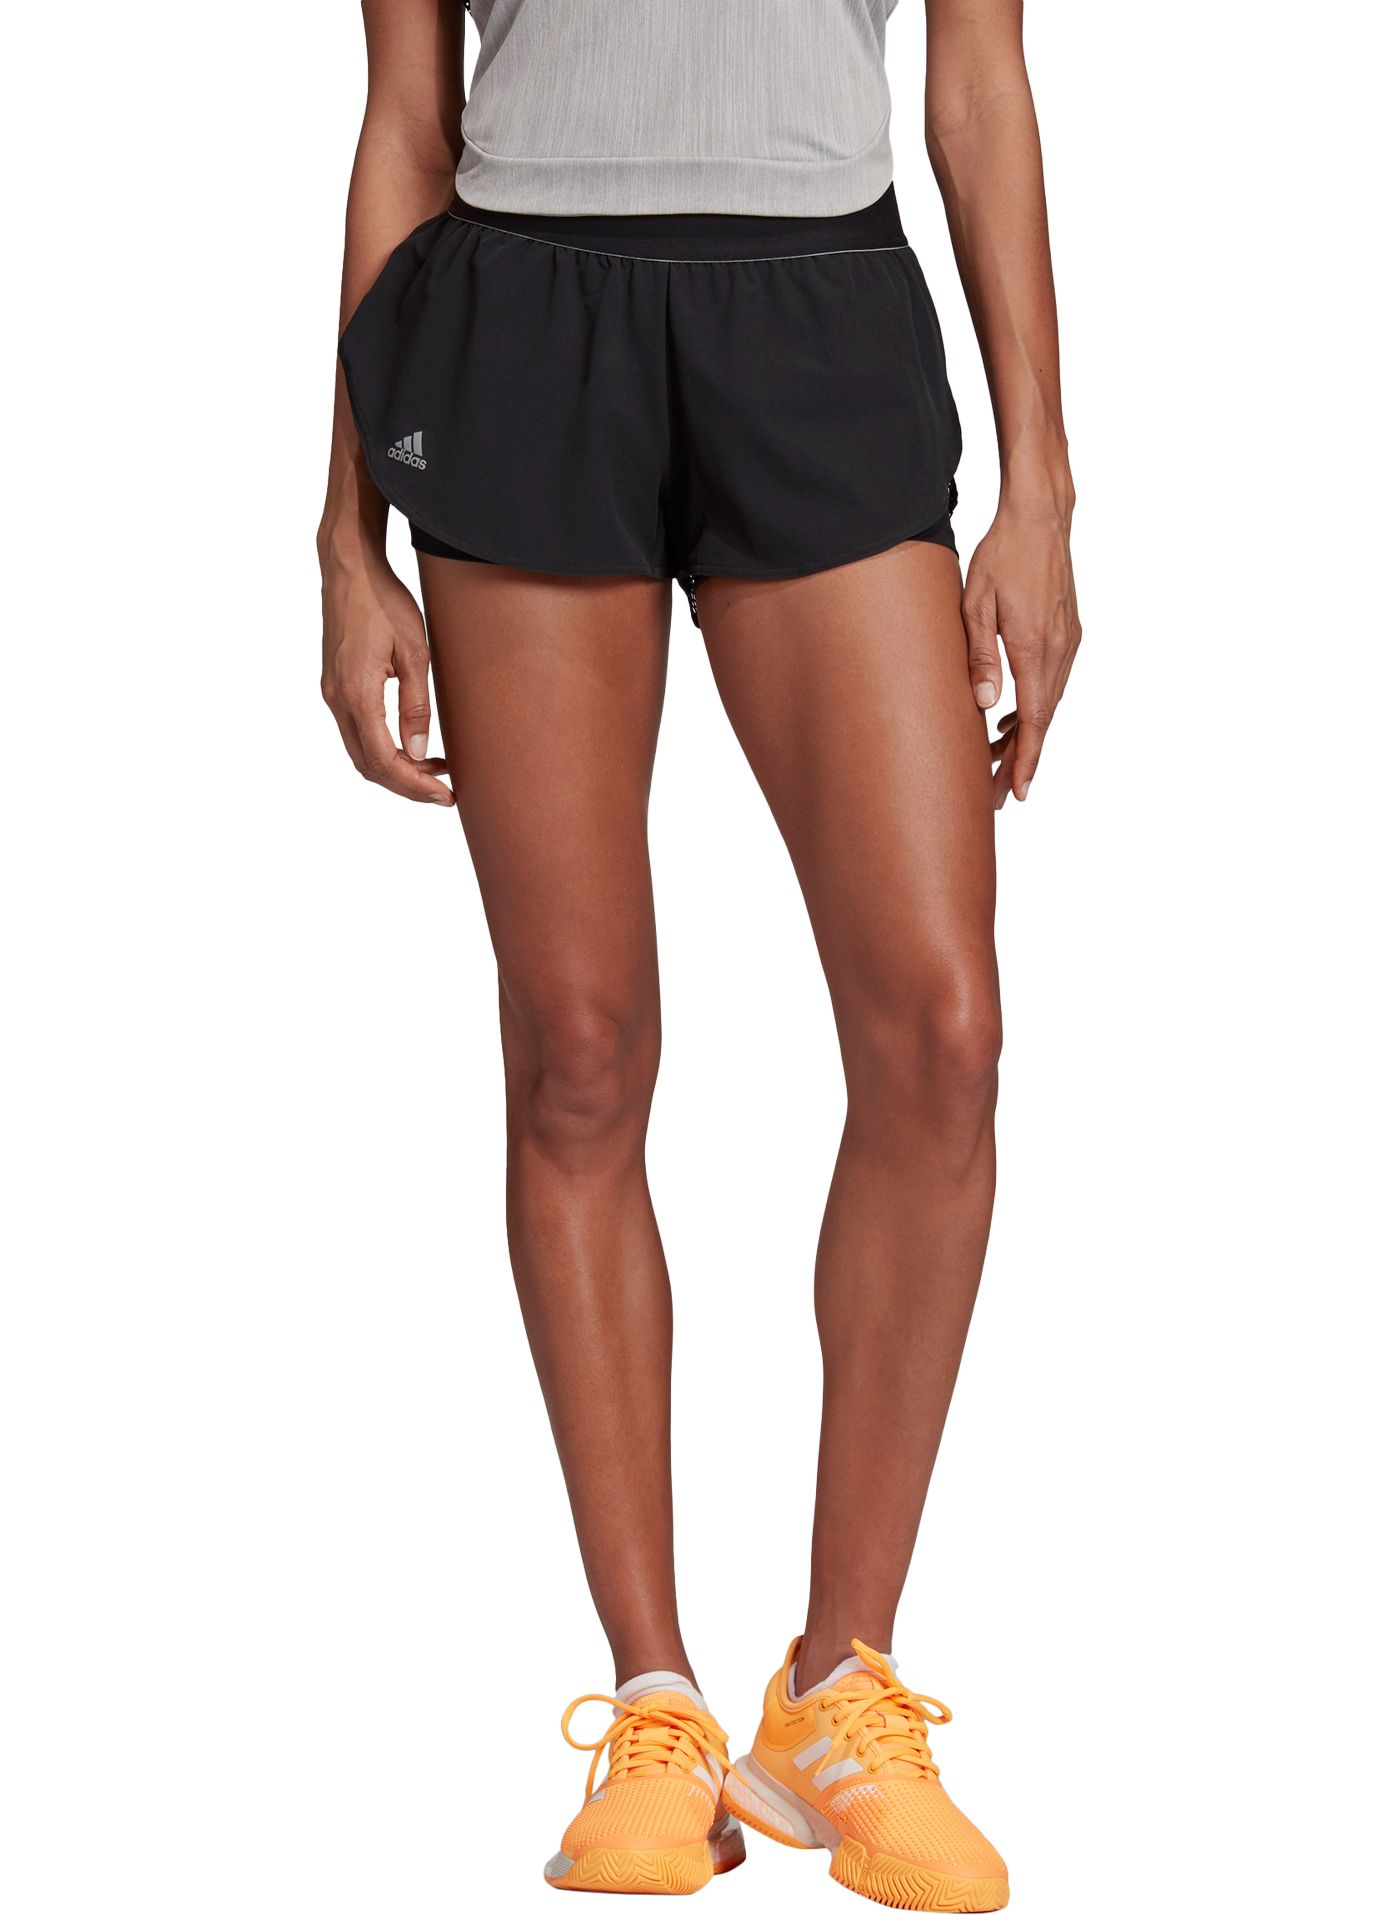 adidas Women's New York Perforated Tennis Shorts